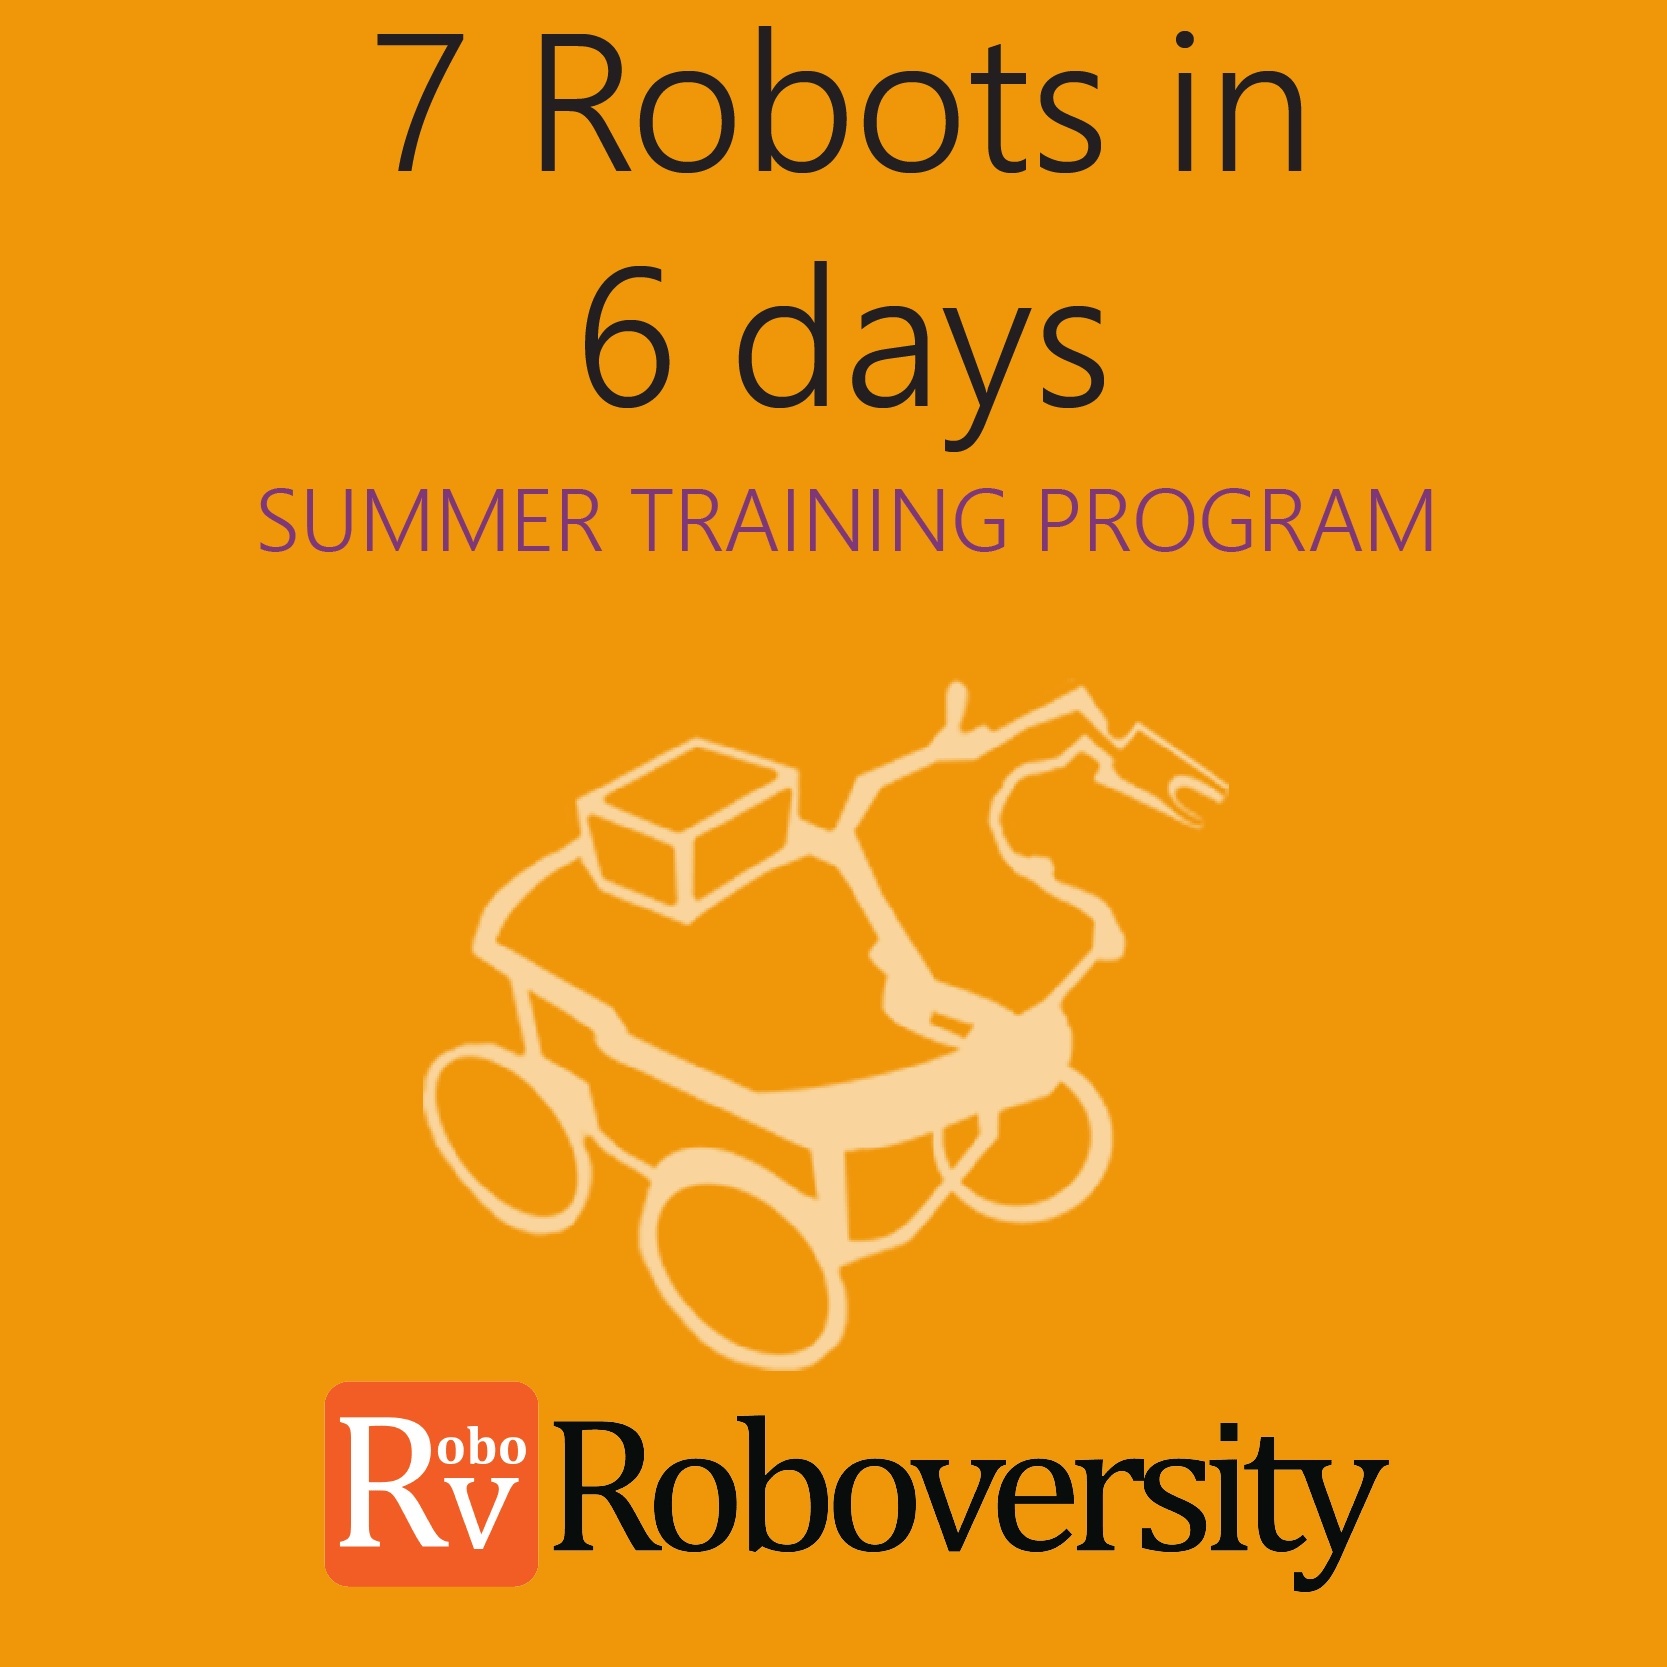 Summer Training Program on 7 Robots in 6 Days  at Skyfi Labs, NHCE, Marathahalli Workshop